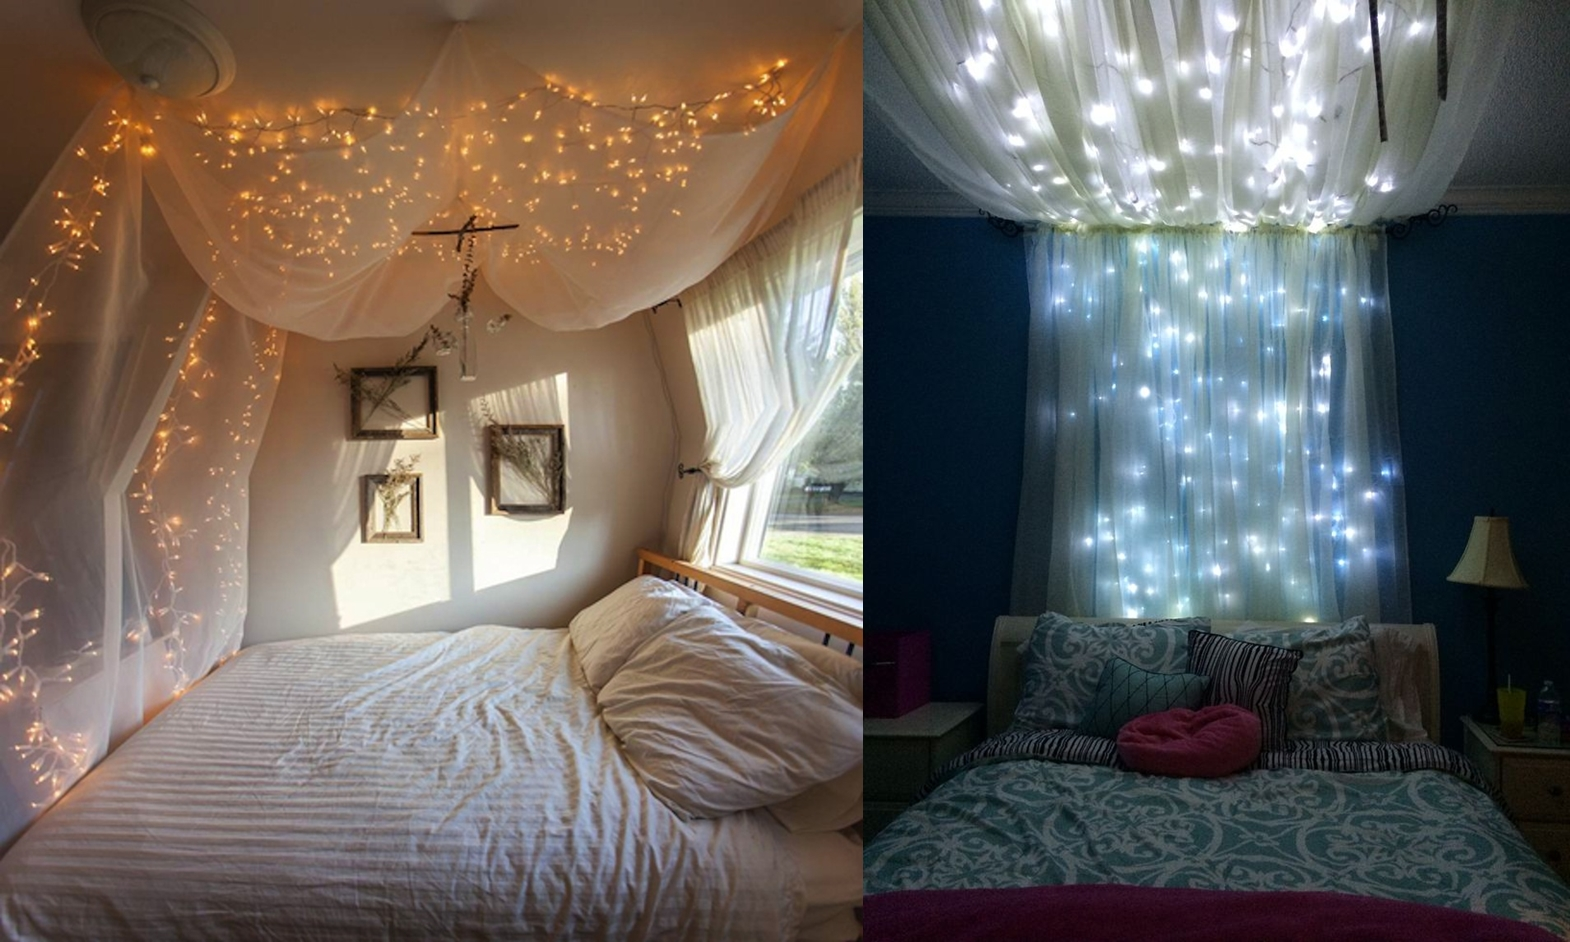 Bed Canopy Diy 14 Diy Bed Canopies To Turn Your Bedroom Into A Serene Sanctuary